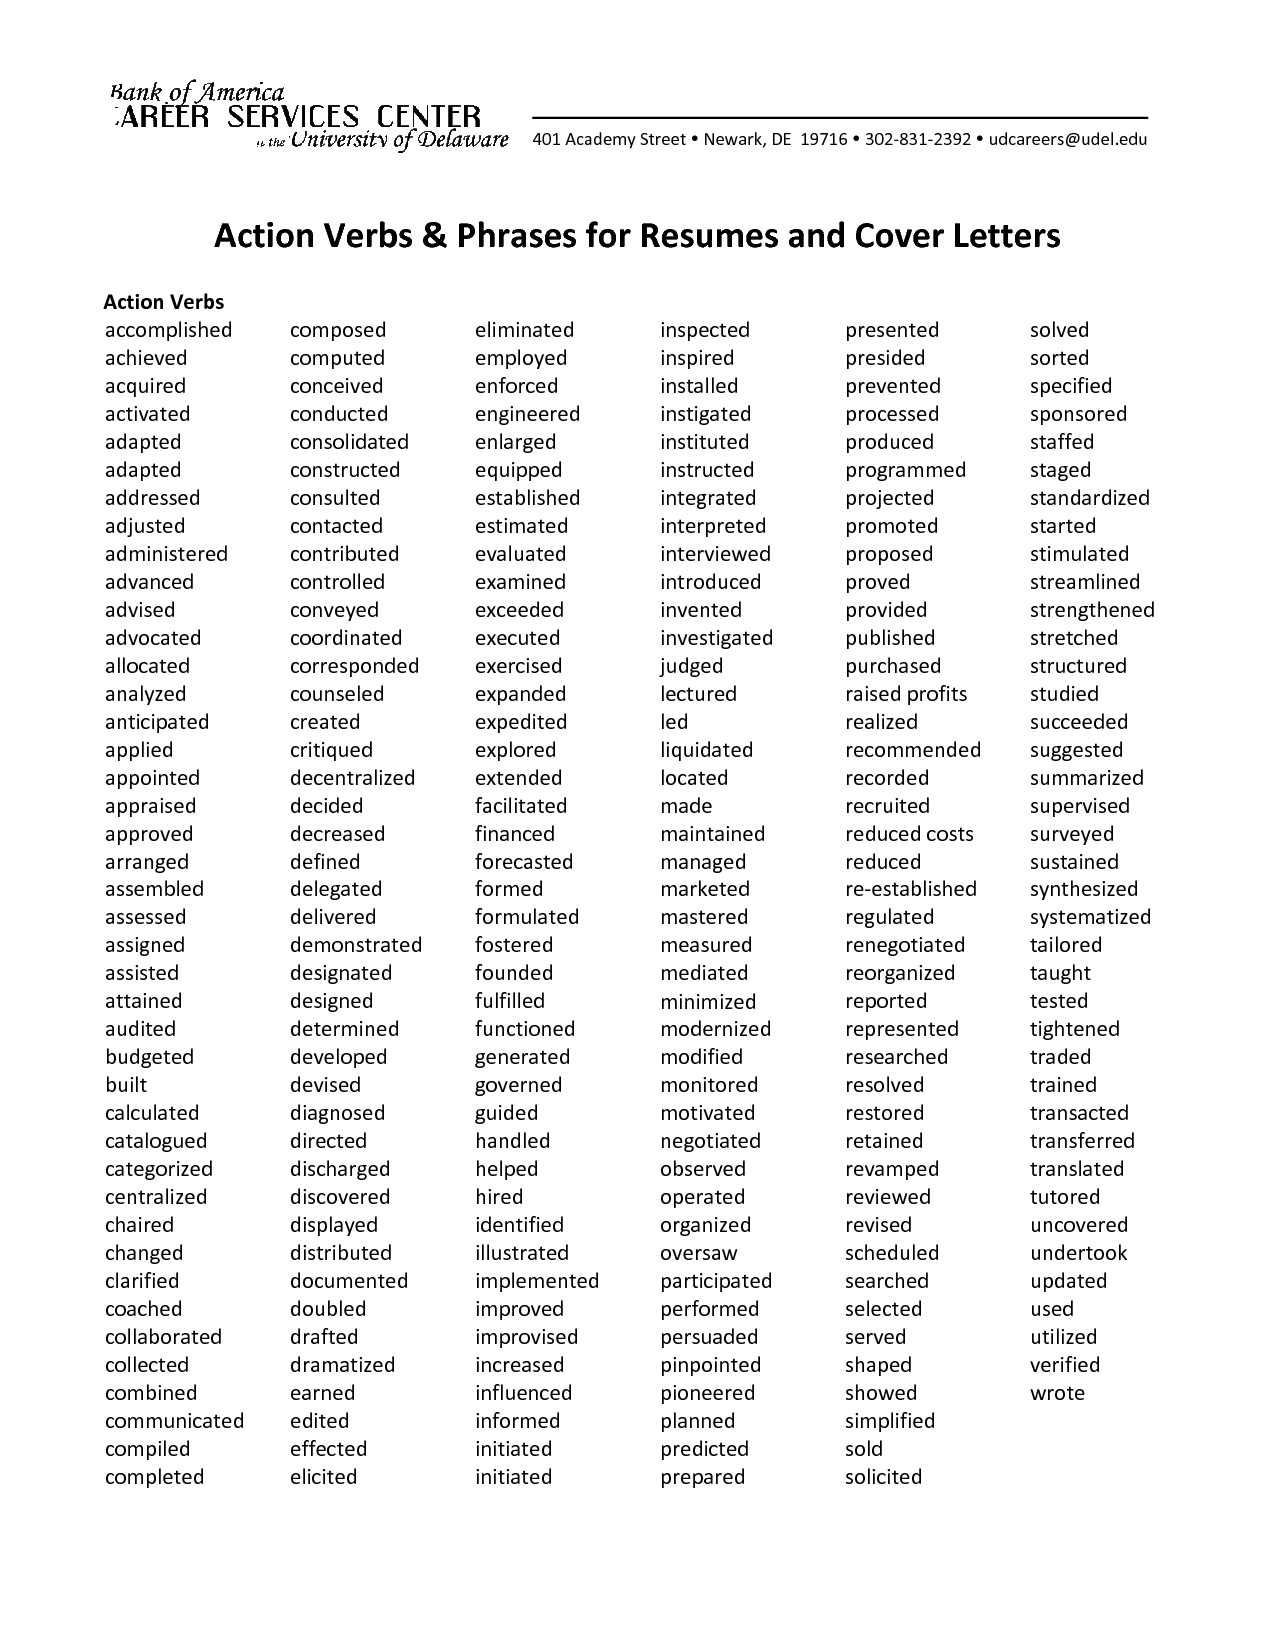 Action Verbs Phrases For Resumes And Cover Letters  Resume Power Phrases